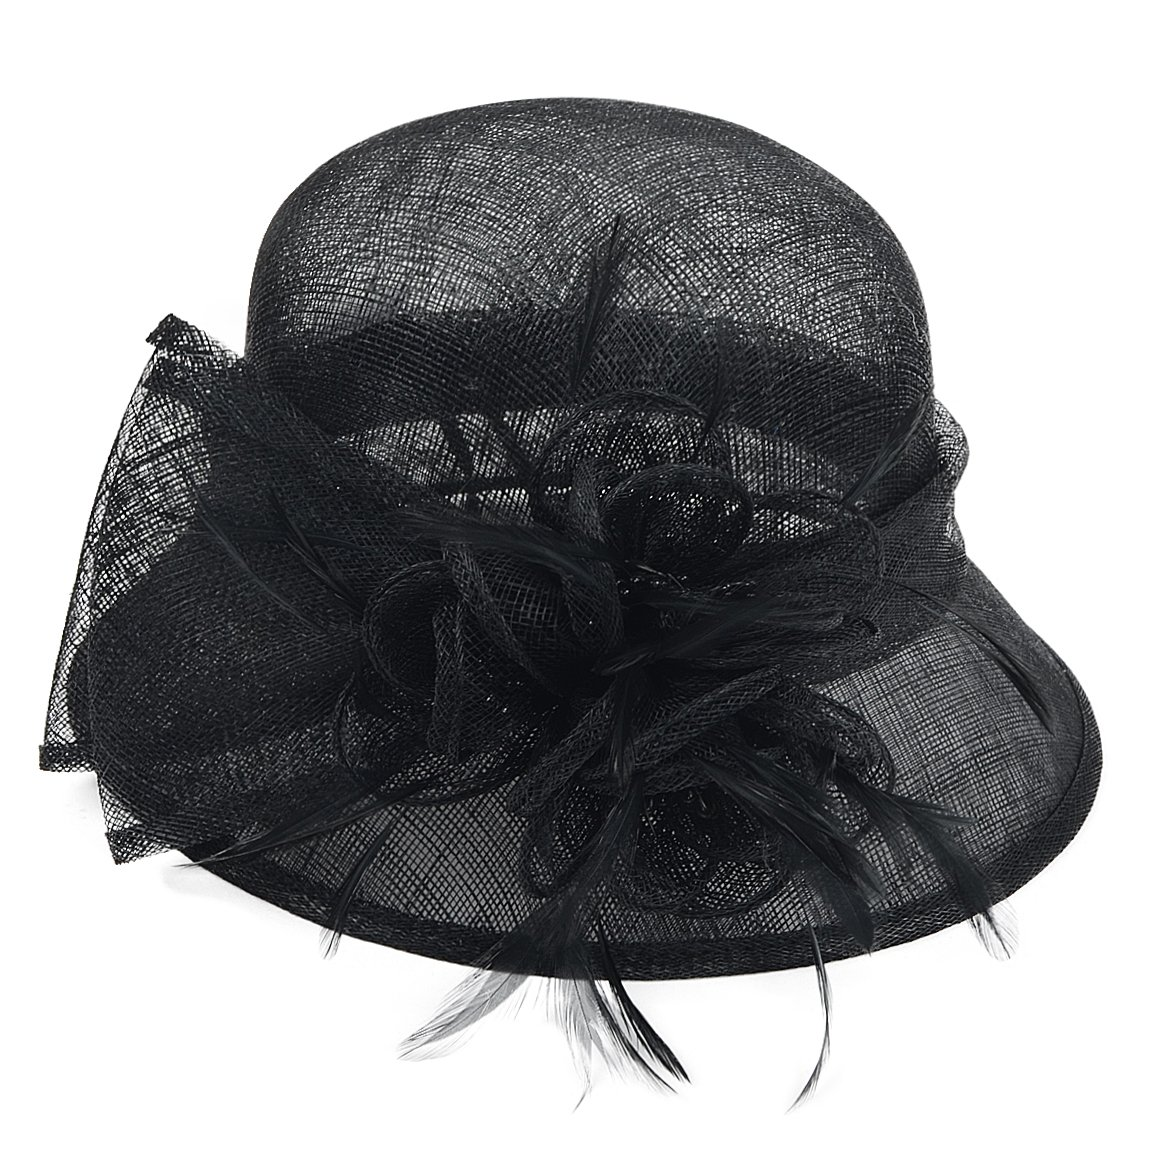 FORBUSITE Occasion Church Wedding Sinamay Cloche Hats for Women SM122 (Black) by FORBUSITE (Image #2)